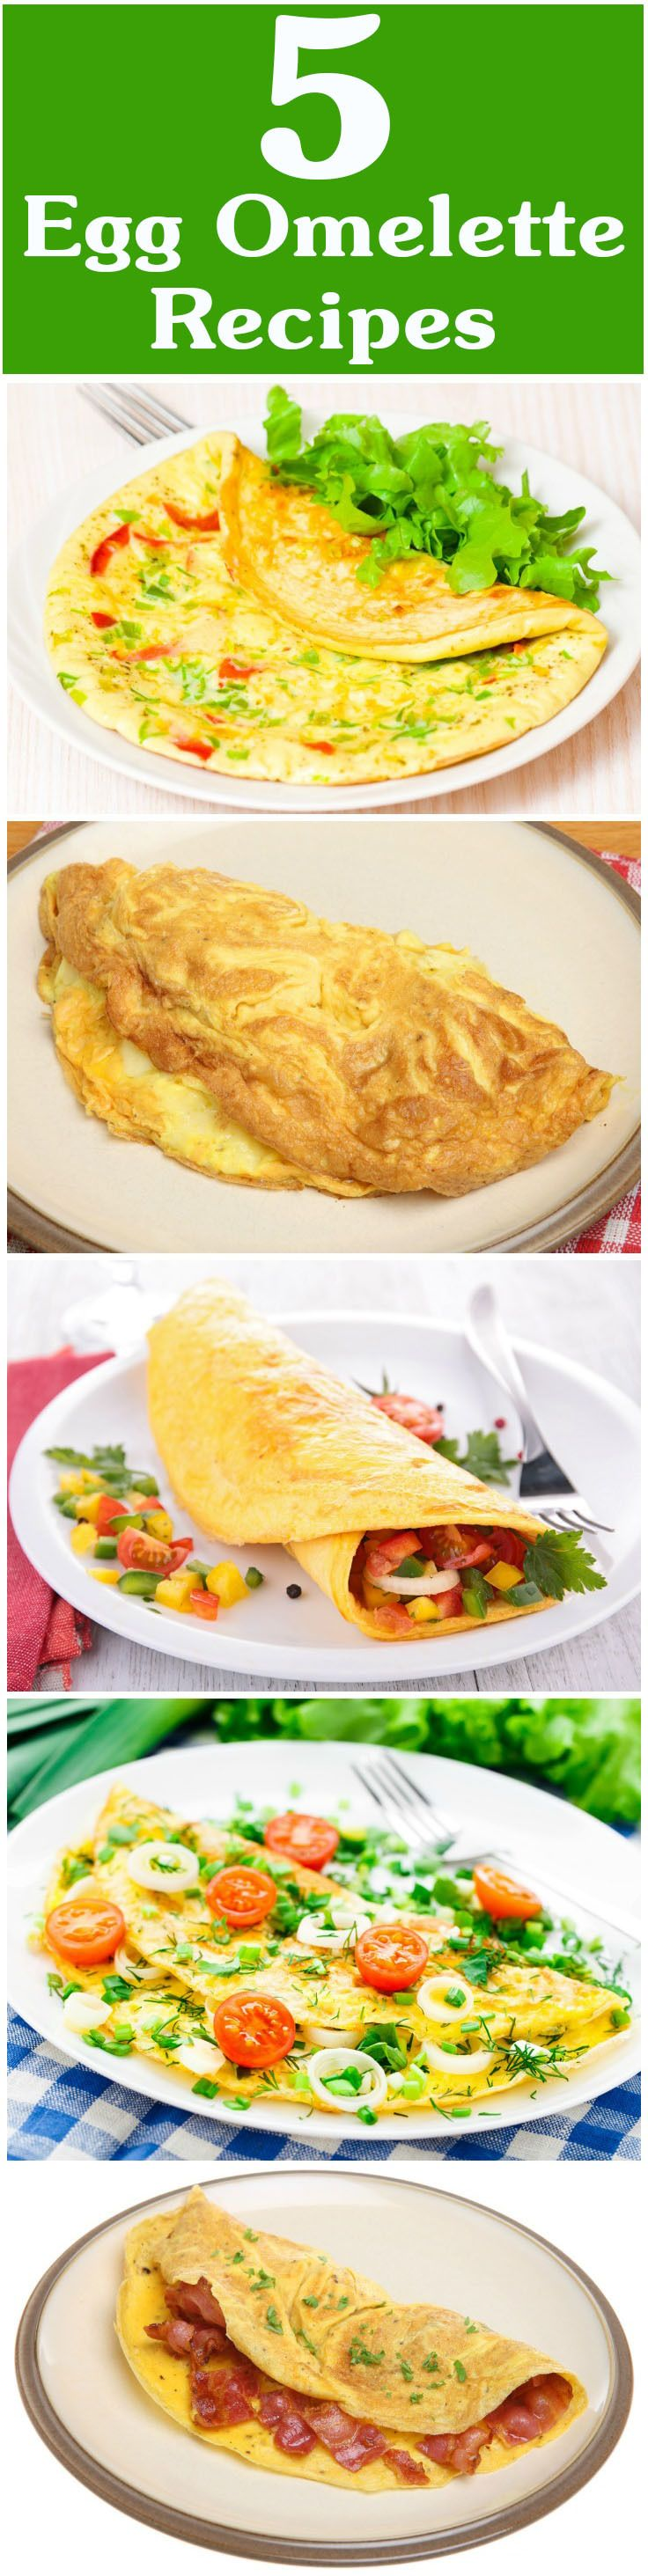 5 Yummy Egg Omelette Recipes To Try Out Today